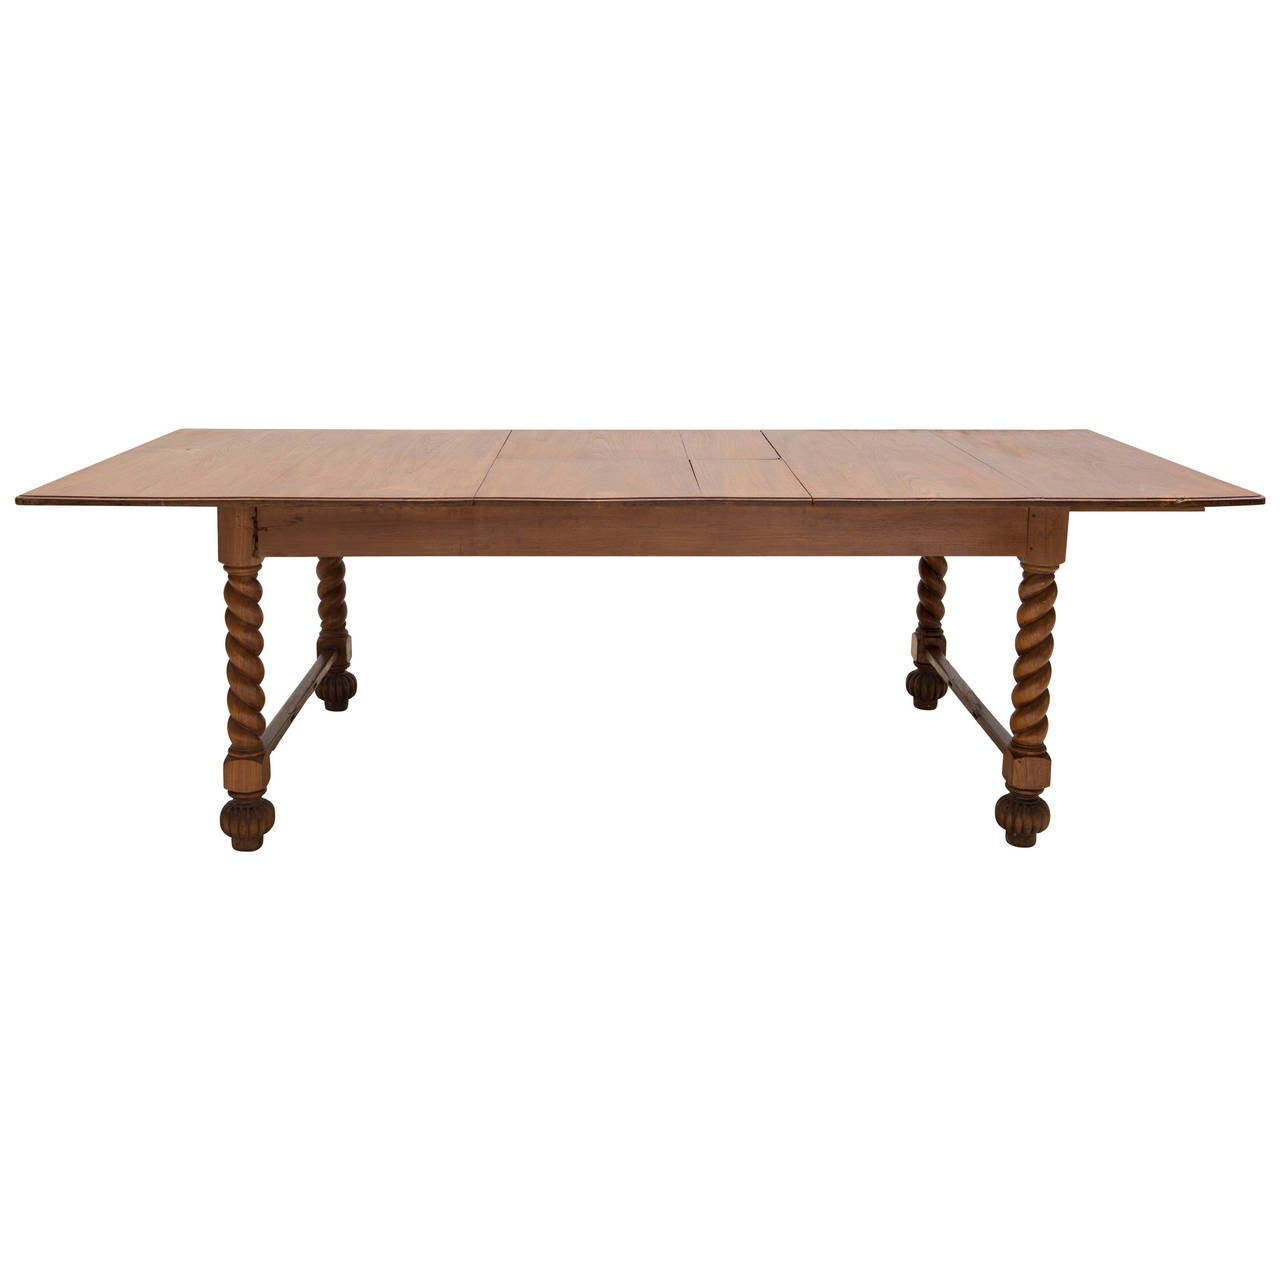 Old Colonial Dining Table with Leaf Indonesia at 1stdibs : 2649532l from www.1stdibs.com size 1280 x 1280 jpeg 40kB